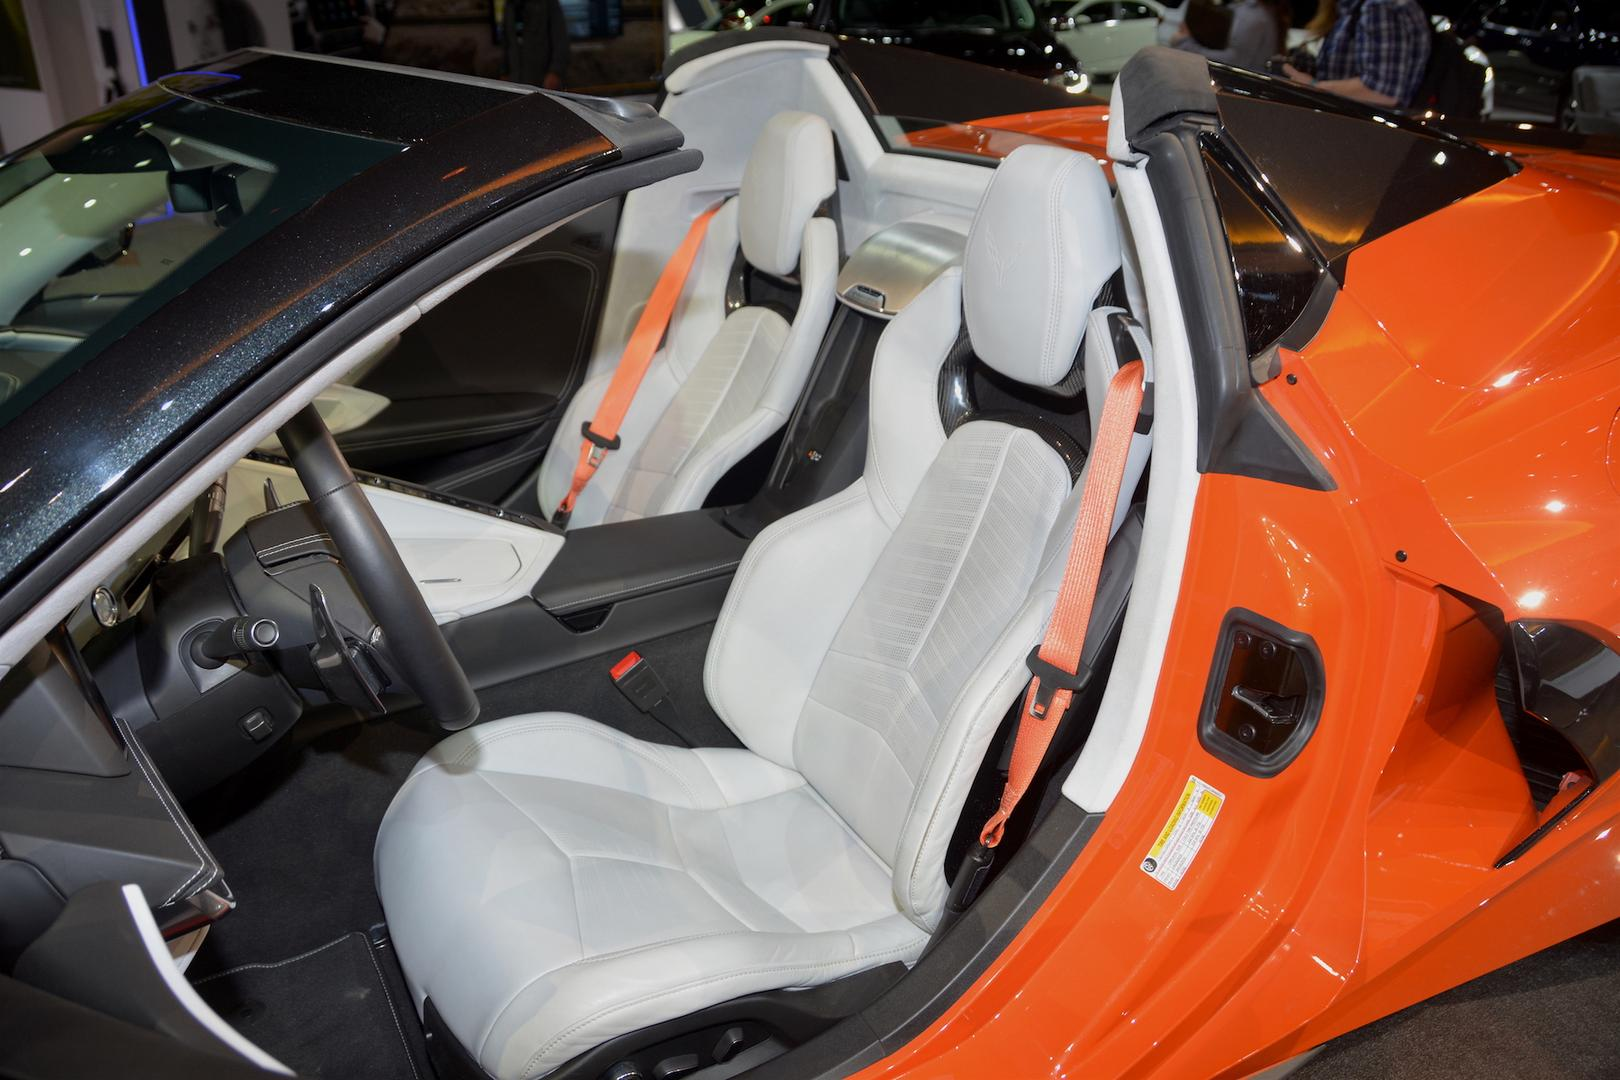 2020 Corvette C8 Convertible Seats